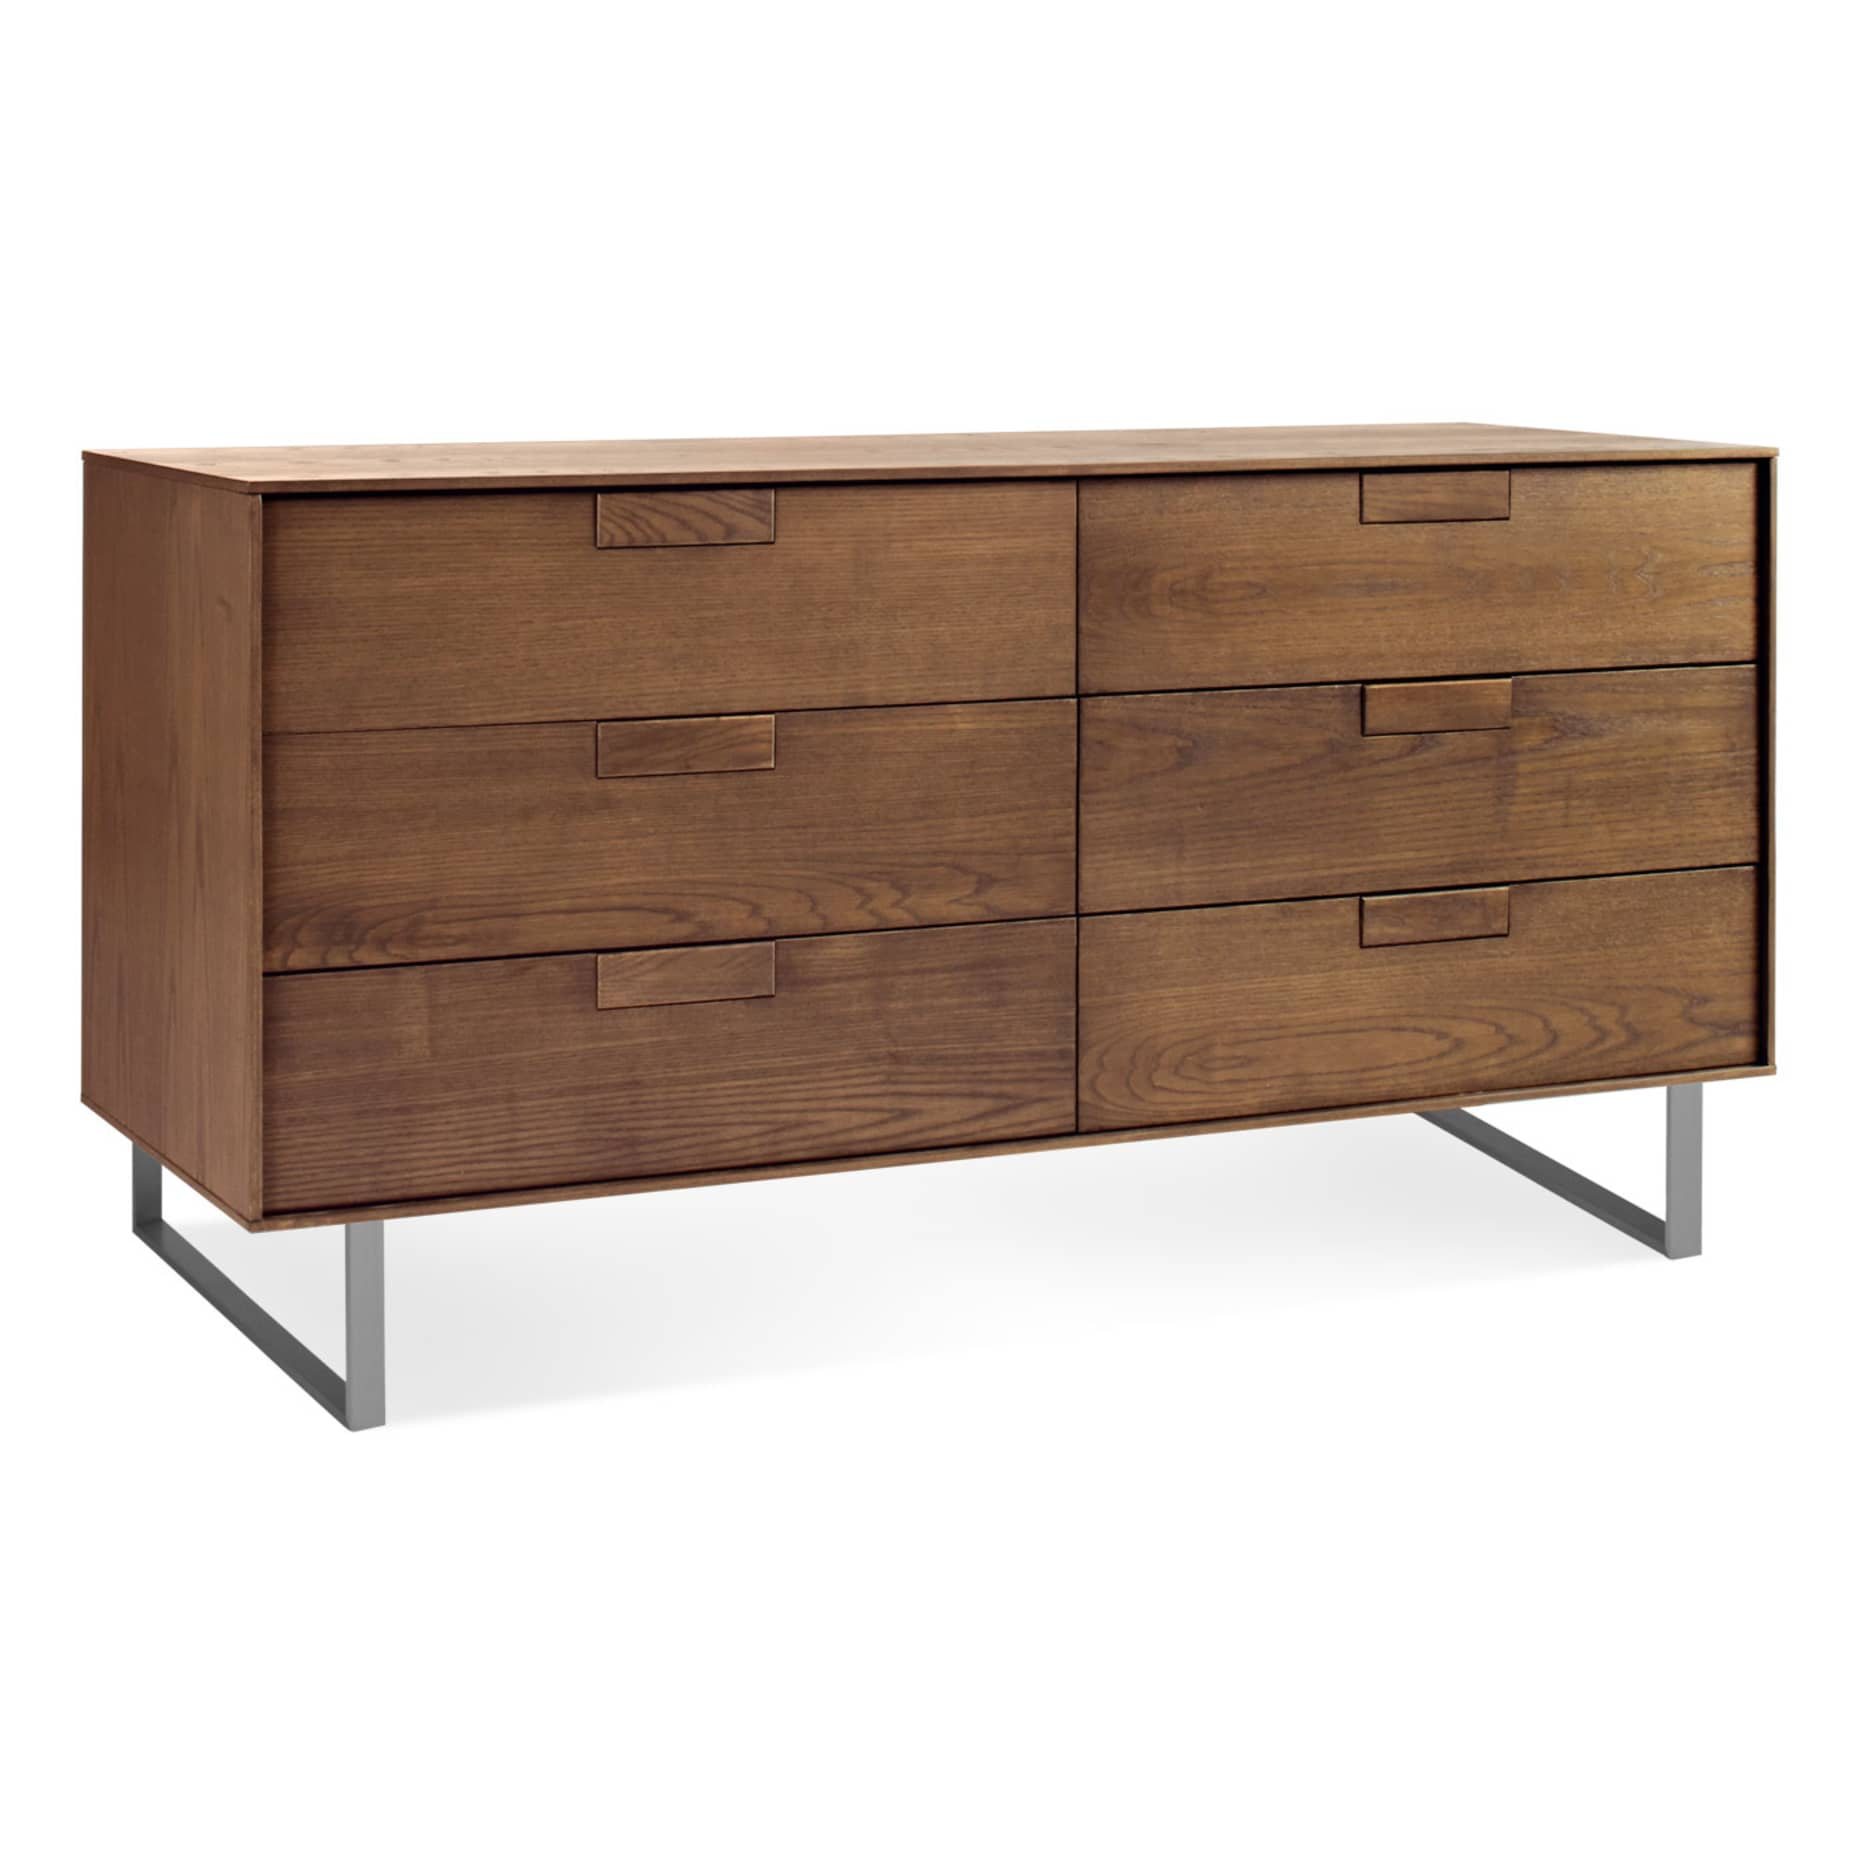 se1 6drwdr wl 34 series 11 6 drawer dresser walnut 3